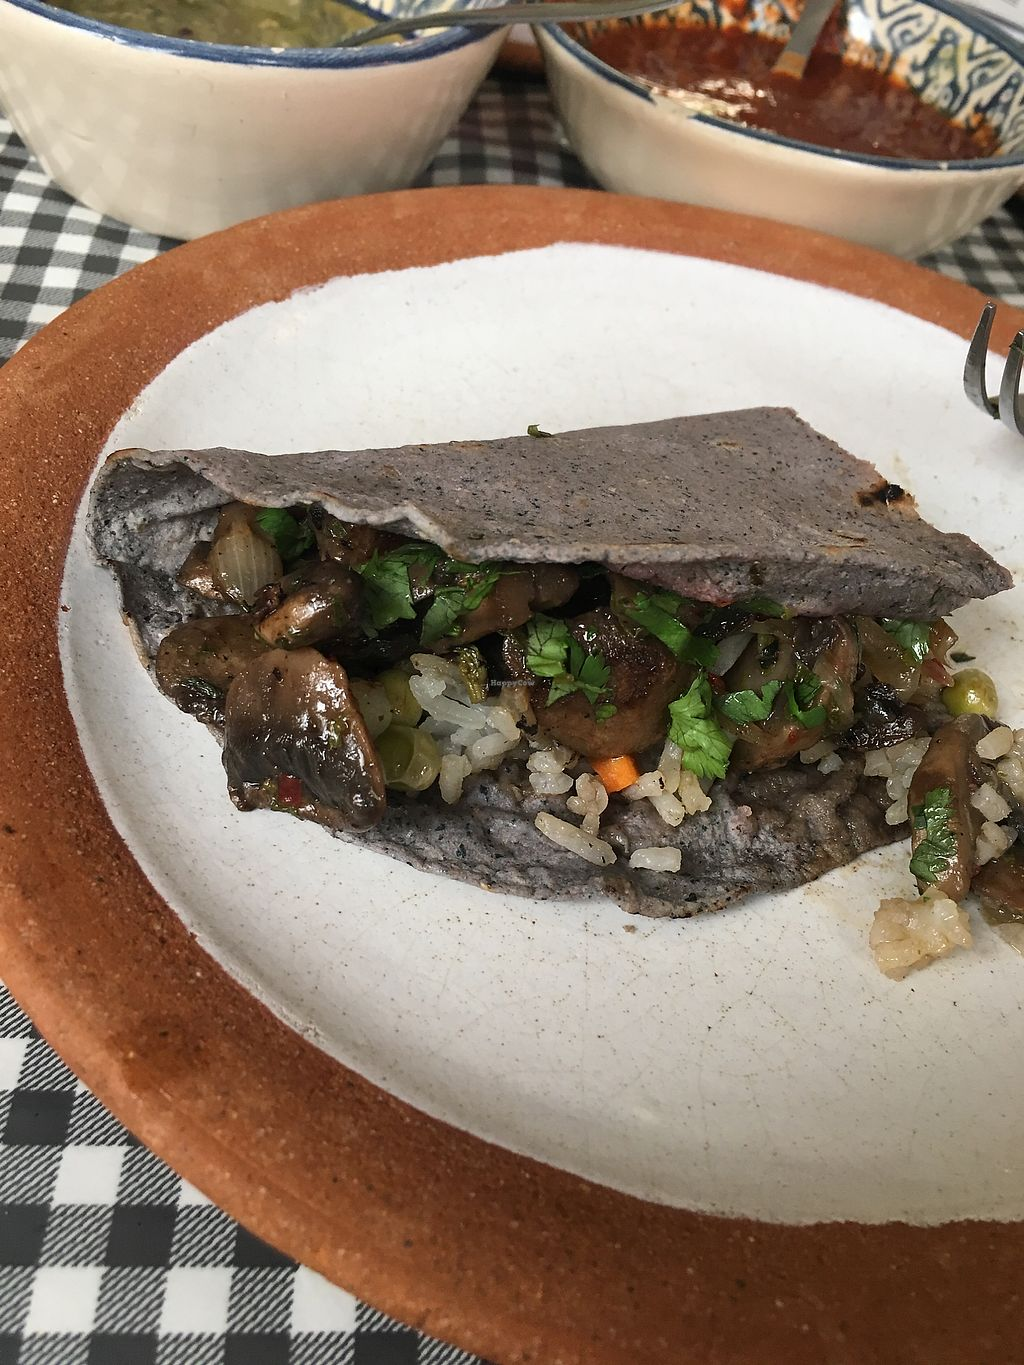 """Photo of Cabuche  by <a href=""""/members/profile/Cecilepages"""">Cecilepages</a> <br/>Asked for a mushroom taco and they did it :) <br/> September 9, 2017  - <a href='/contact/abuse/image/82103/302548'>Report</a>"""